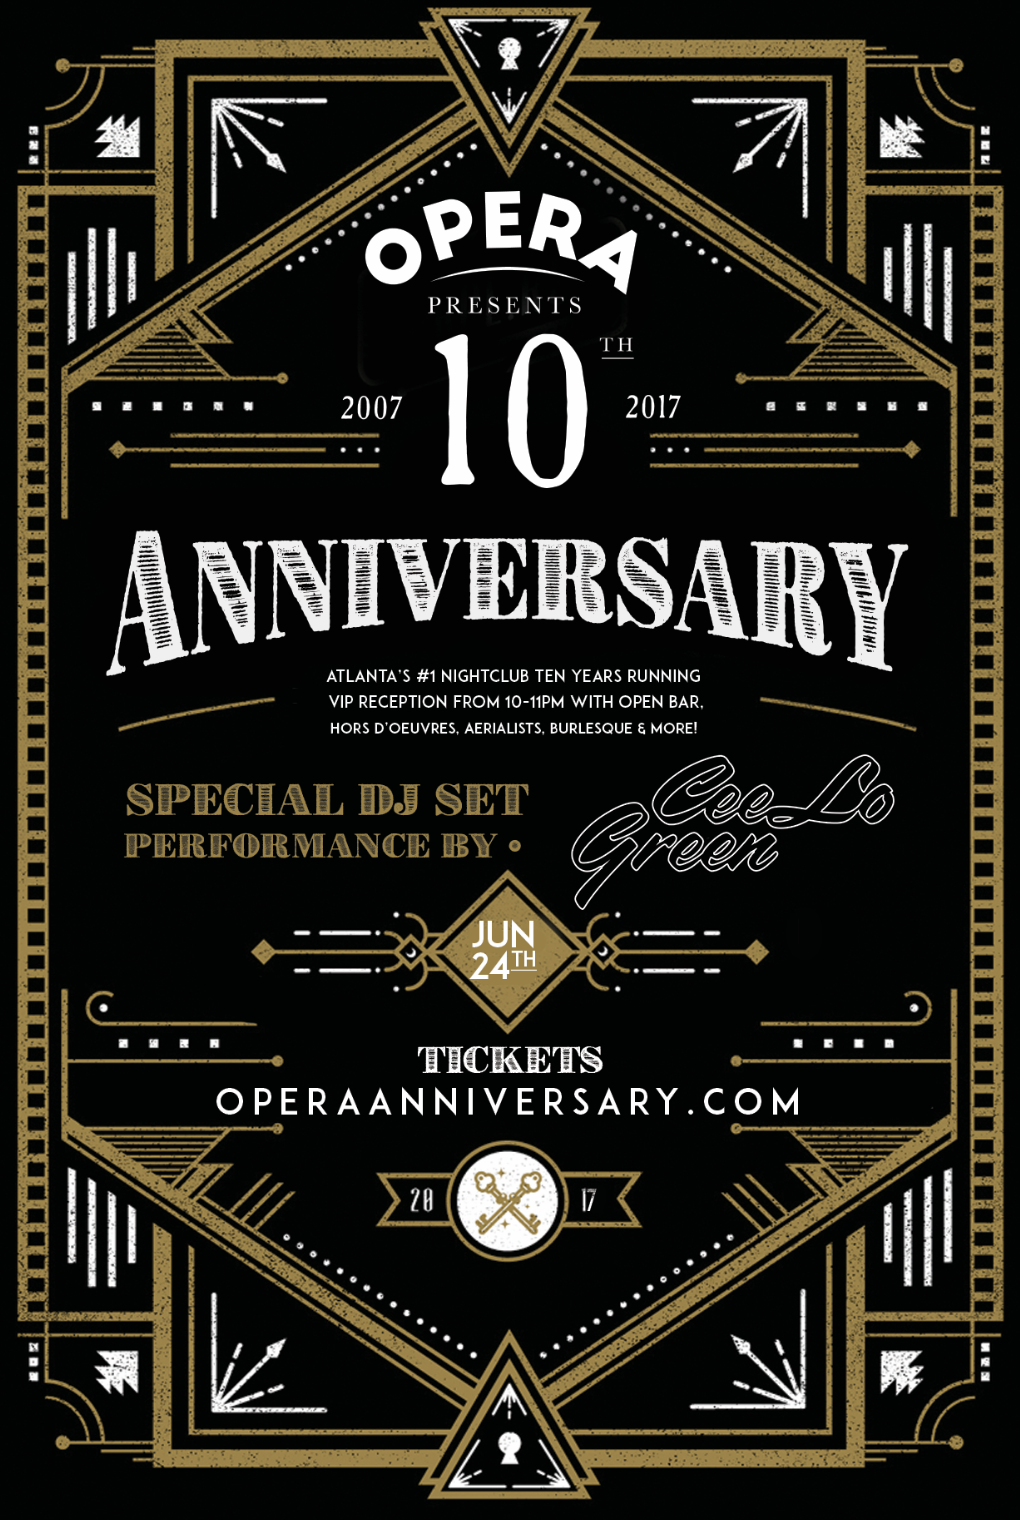 Anniversary flyer design